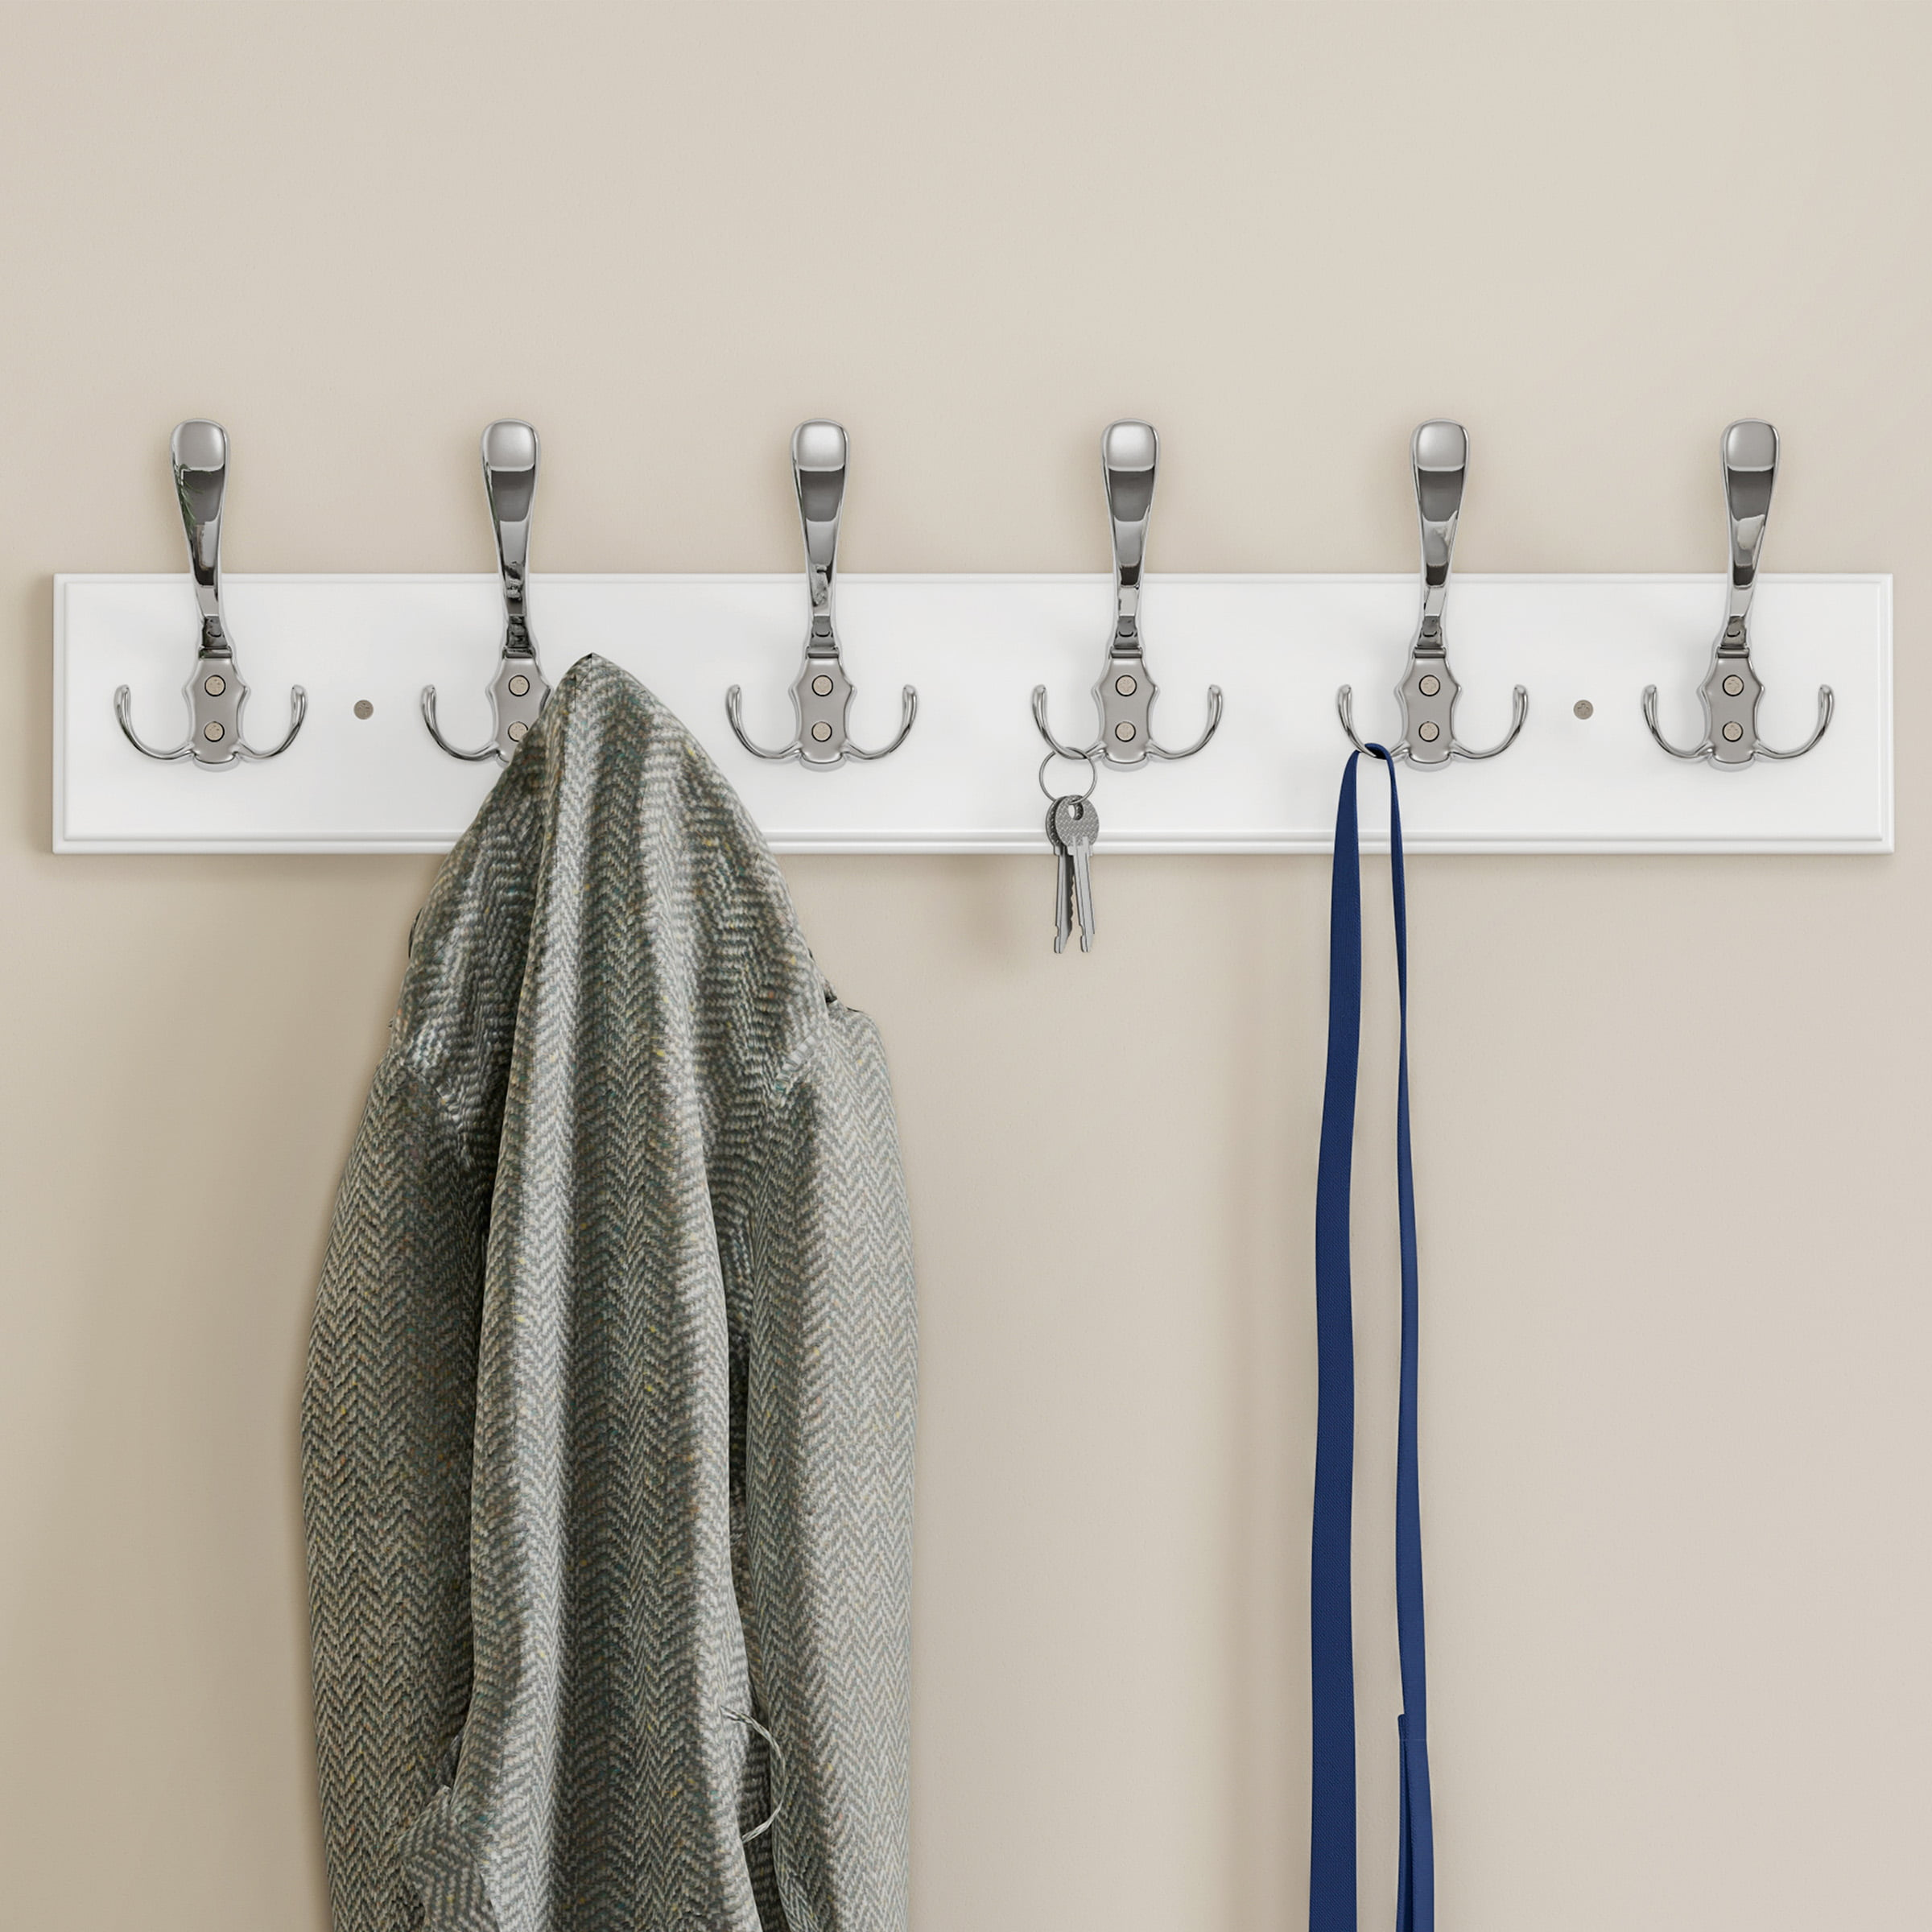 Wall Hook Rail Mounted Hanging Rack, How To Put Coat Hanger On Wall